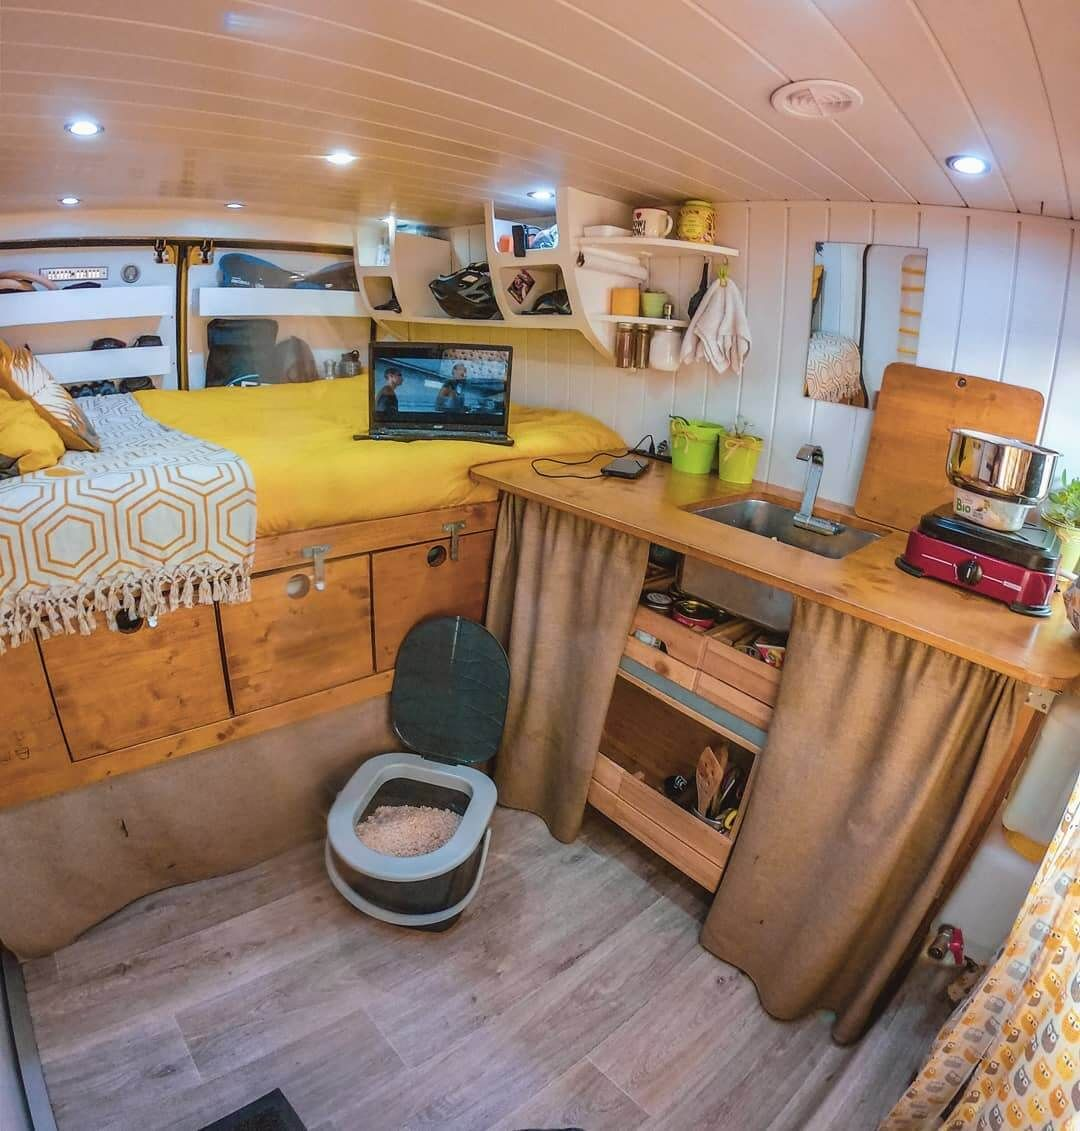 9 Campervan Kitchen Design Ideas For Van Life Portable Toilet For Camping Small Camper Interior Small Campers